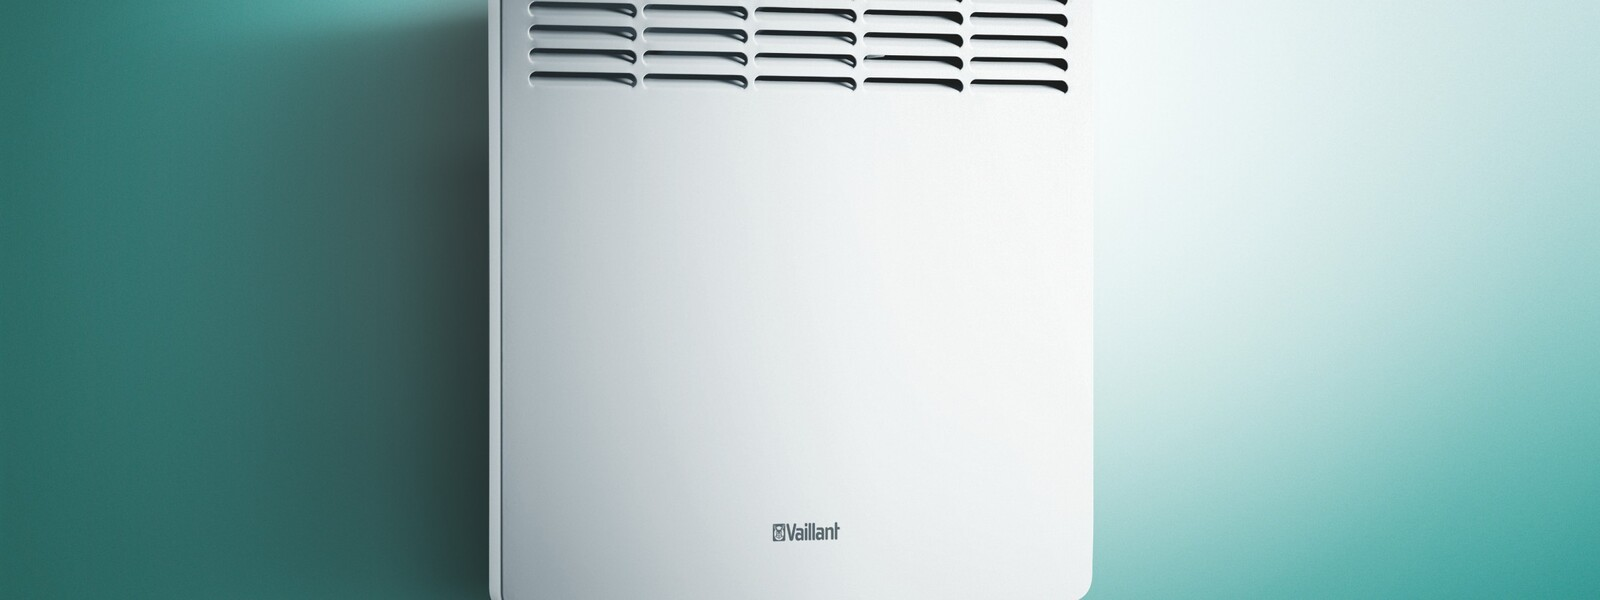 https://www.vaillant-group.com/newsroom/pressemitteilungen/2018/shk-2018/elektro/elektro-3-1166426-format-24-9@1600@desktop.jpg